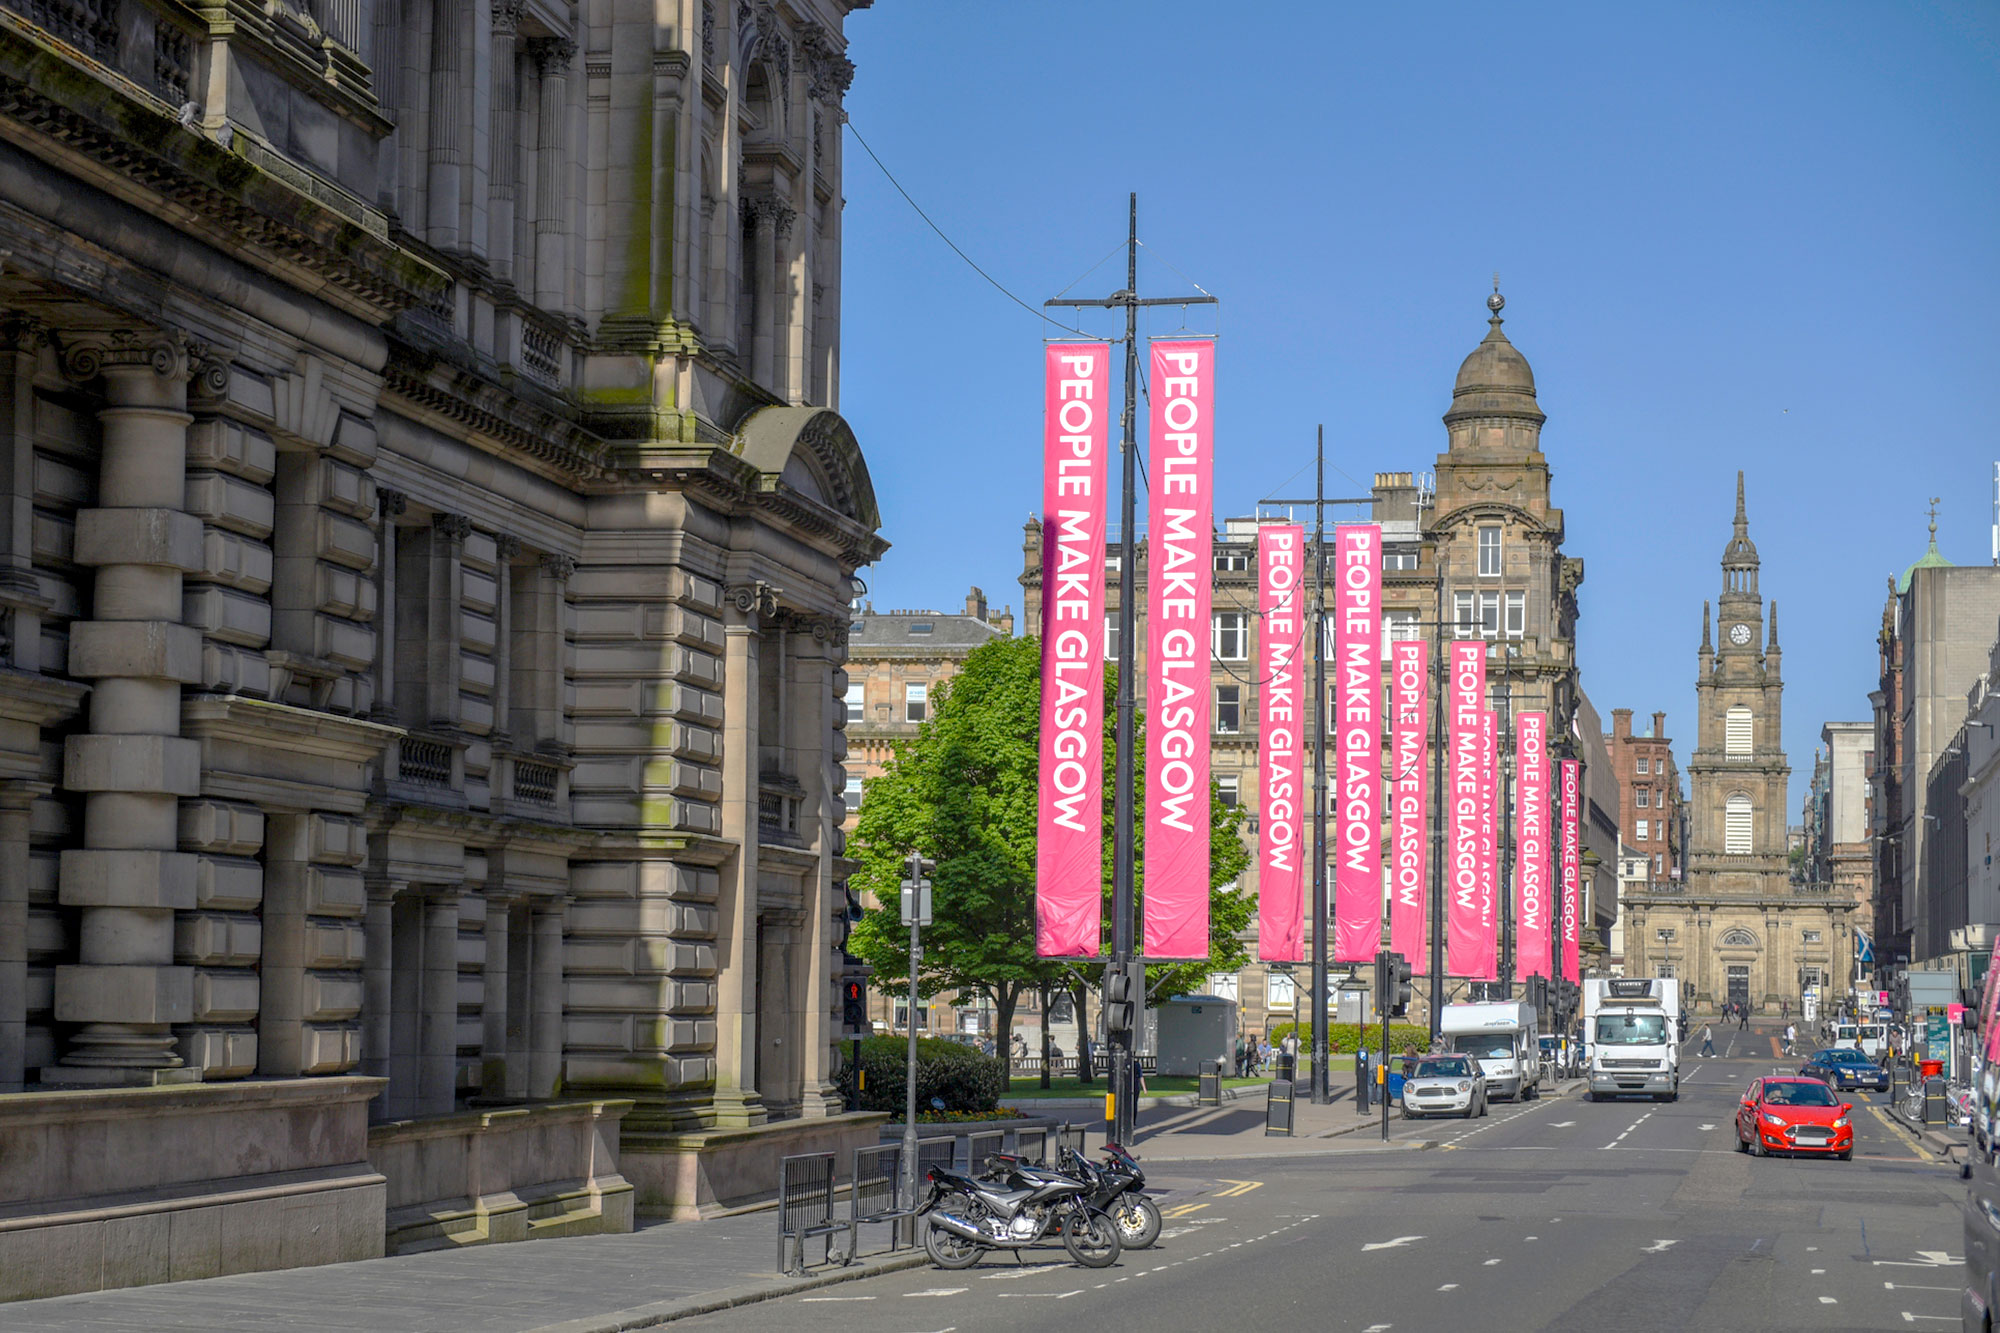 Street view of Glasgow's George Street looking towards George Square and St George's Tron Church (Nelson Mandela Place). with bright pink People Make Glasgow (the city's brand slogan) banners